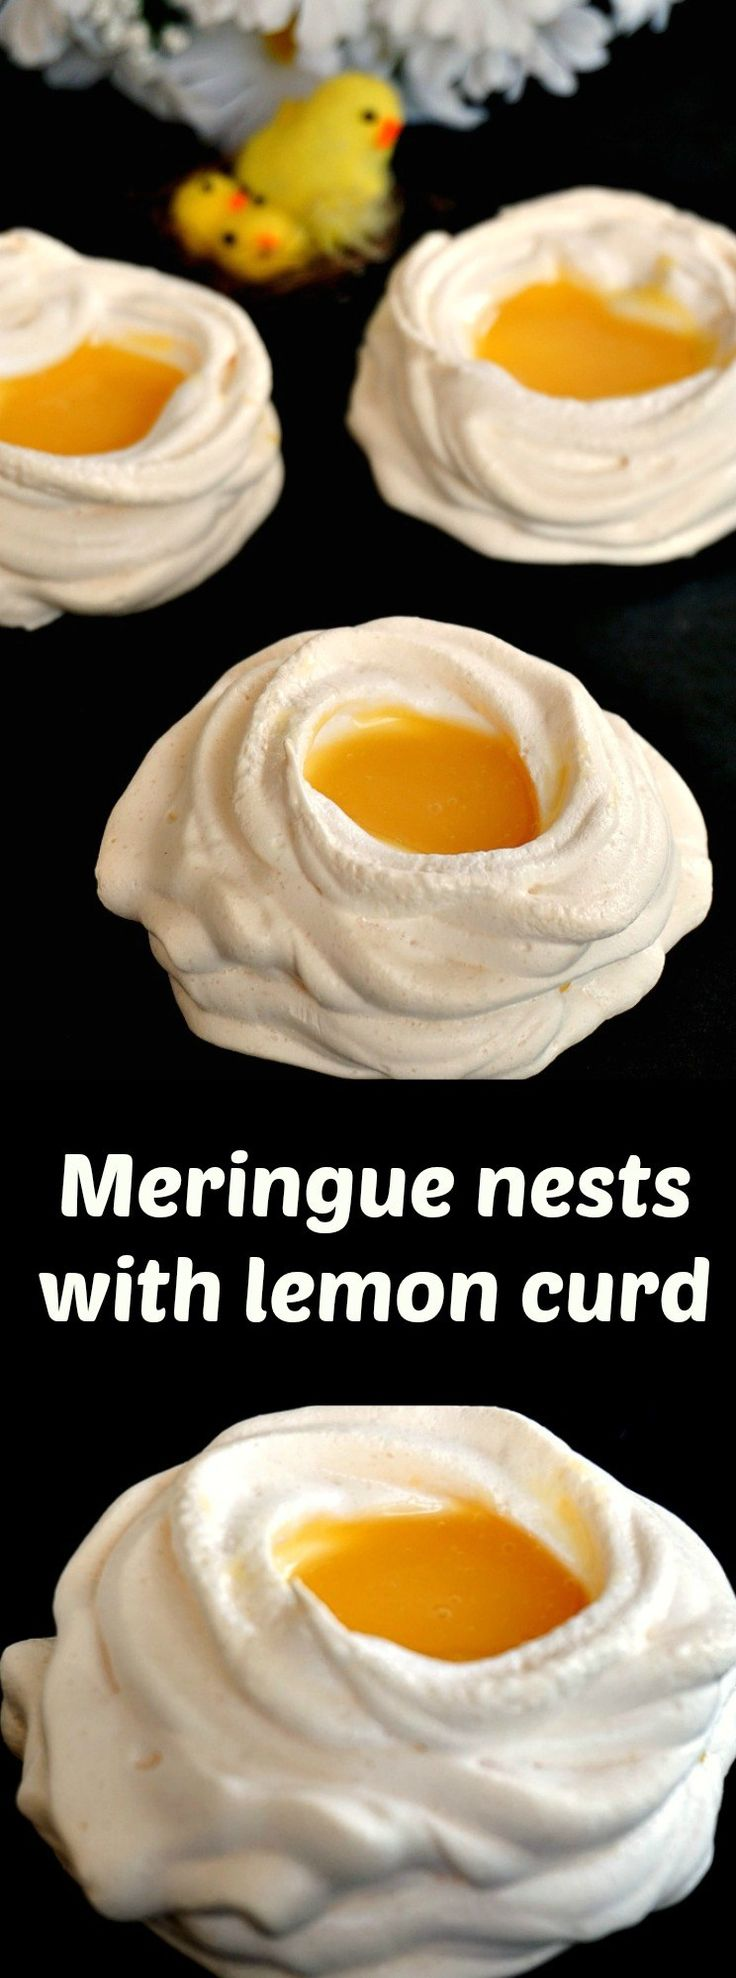 Meringue nests with lemon curd, a fantastic treat for your Easter dessert menu. Nothing beats a homemade lemon curd and some scrumptious meringue nests that are crunchy on the outside, but soft and chewy on the inside. The two together make one happy marriage, and you won't be able to have one portion only!